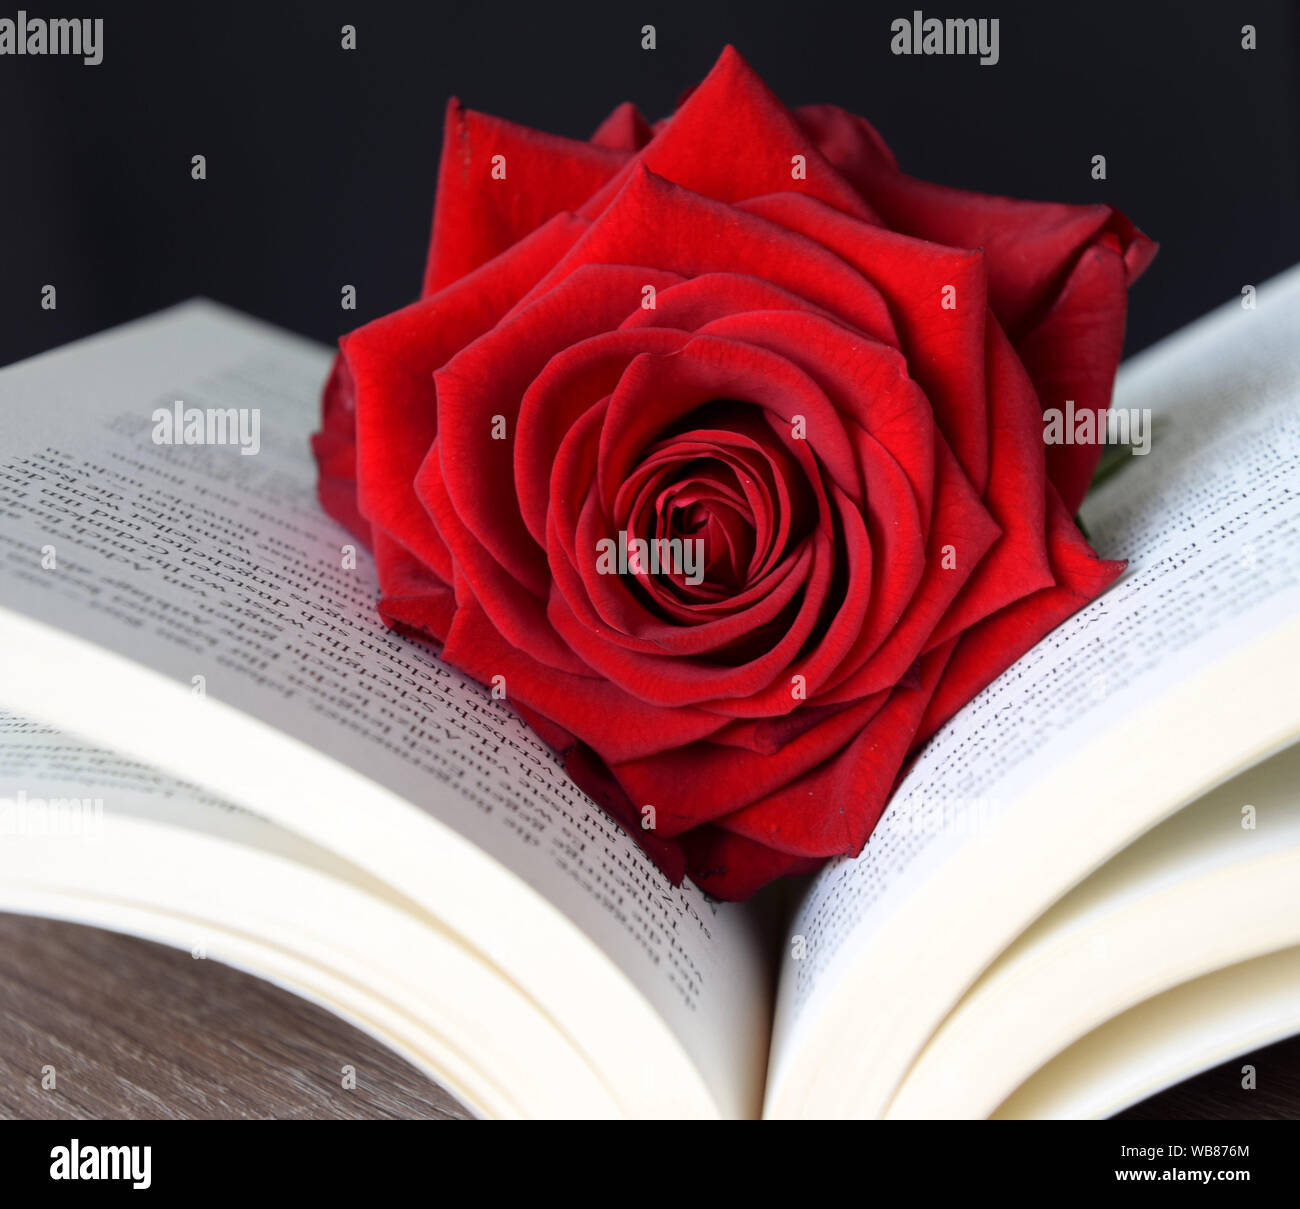 Red Rose Love Photography